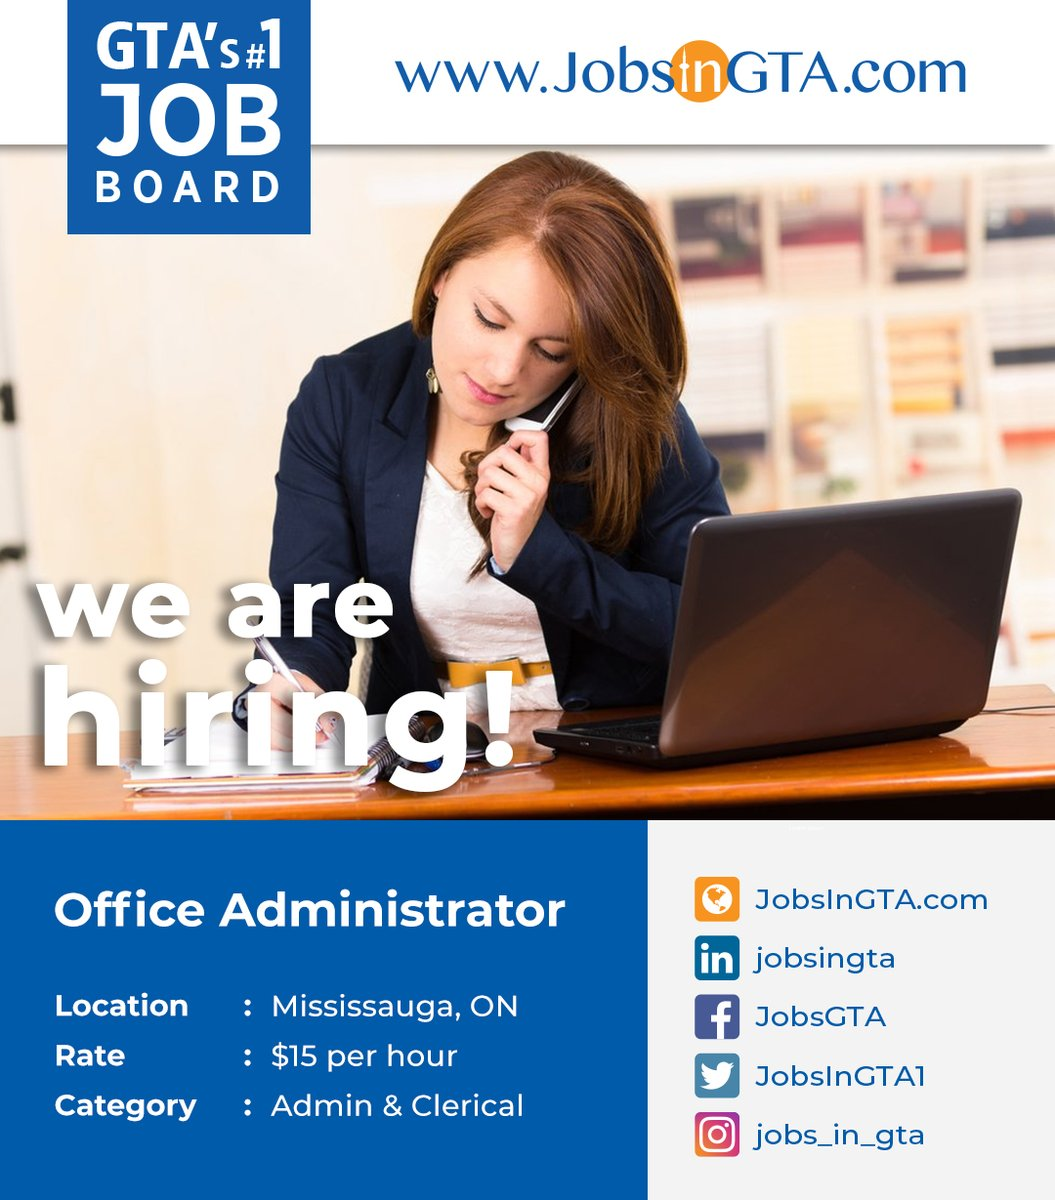 We're hiring ! We're looking for Office Administrator Apply: https://t.co/UhNuaDx8Eo  #JobsInGTA #AdminJobs #Vacancy #OfficeAdmin #ClericalJobs #Hiring #Jobs #TorontoJobs #ThursdayMotivation #Ontario #GTA #Mississauga #Canada https://t.co/dj6xLN1EeO